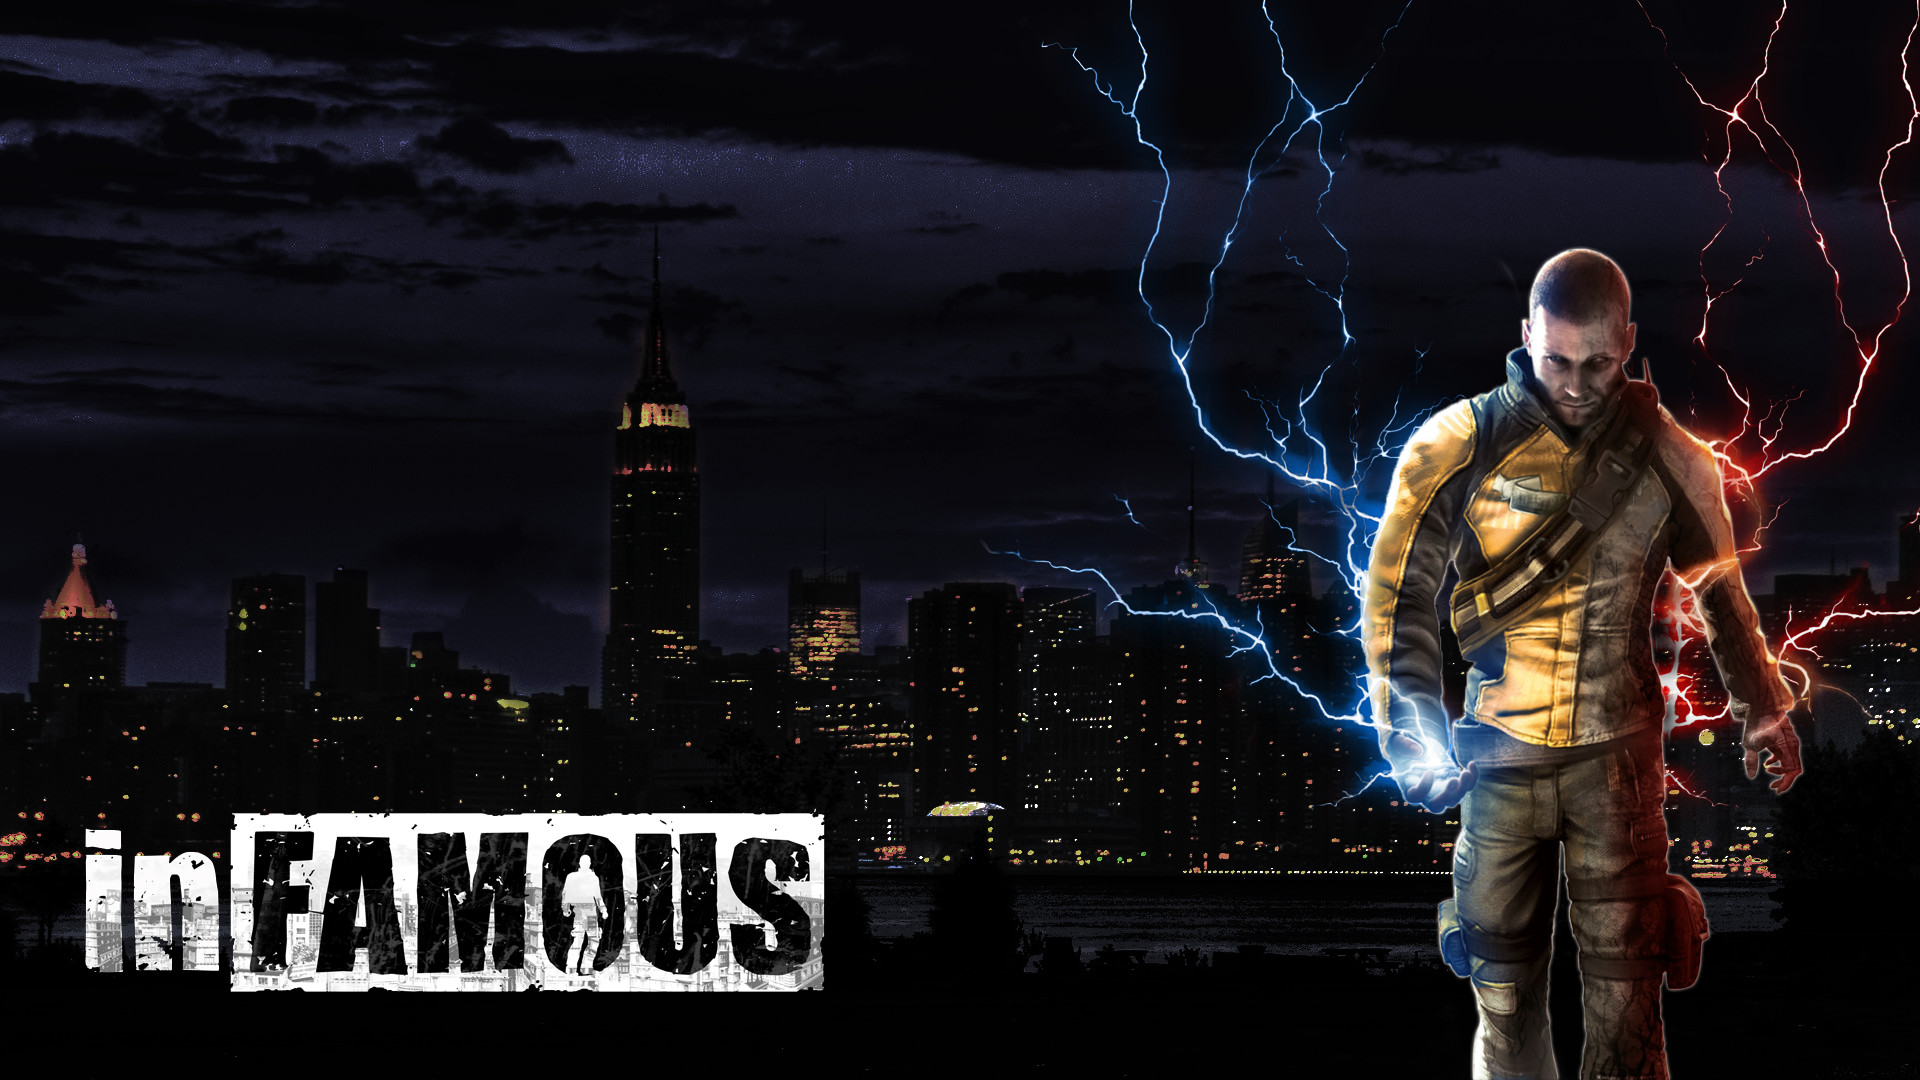 1920x1080 Infamous Wallpaper Hd